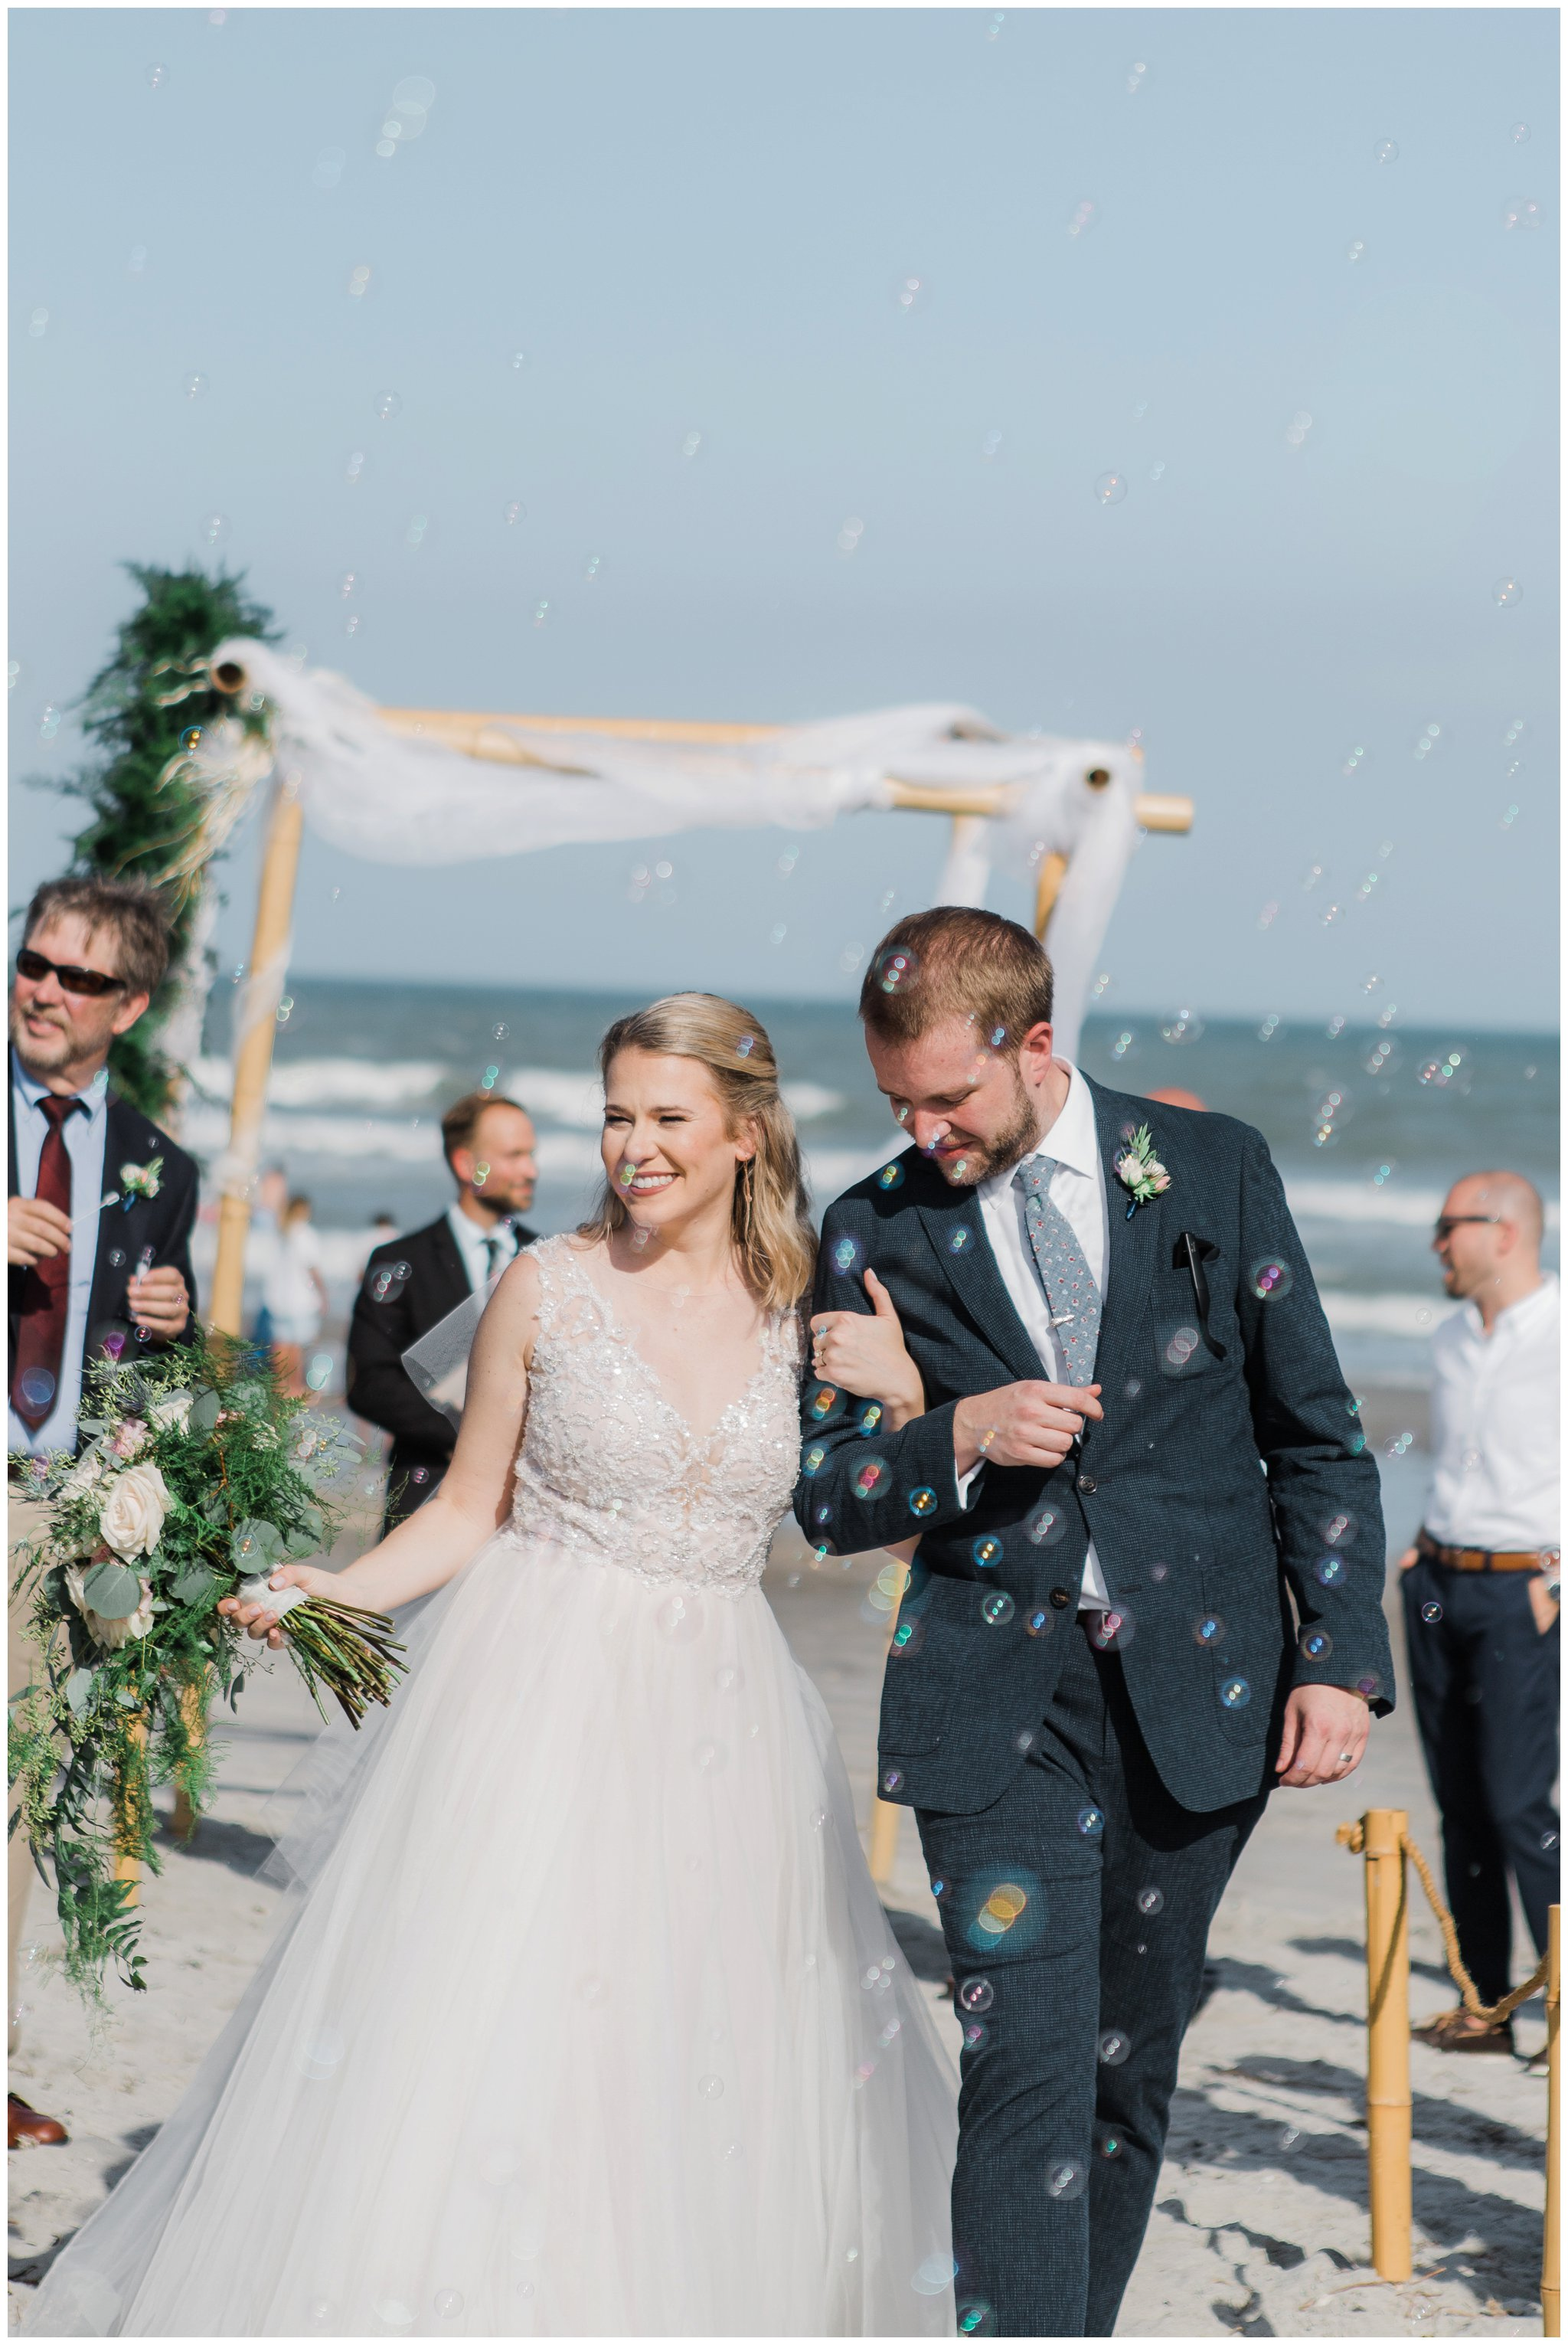 kaley and kevin-coco beach pier wedding-kimberly smith photography_0037.jpg